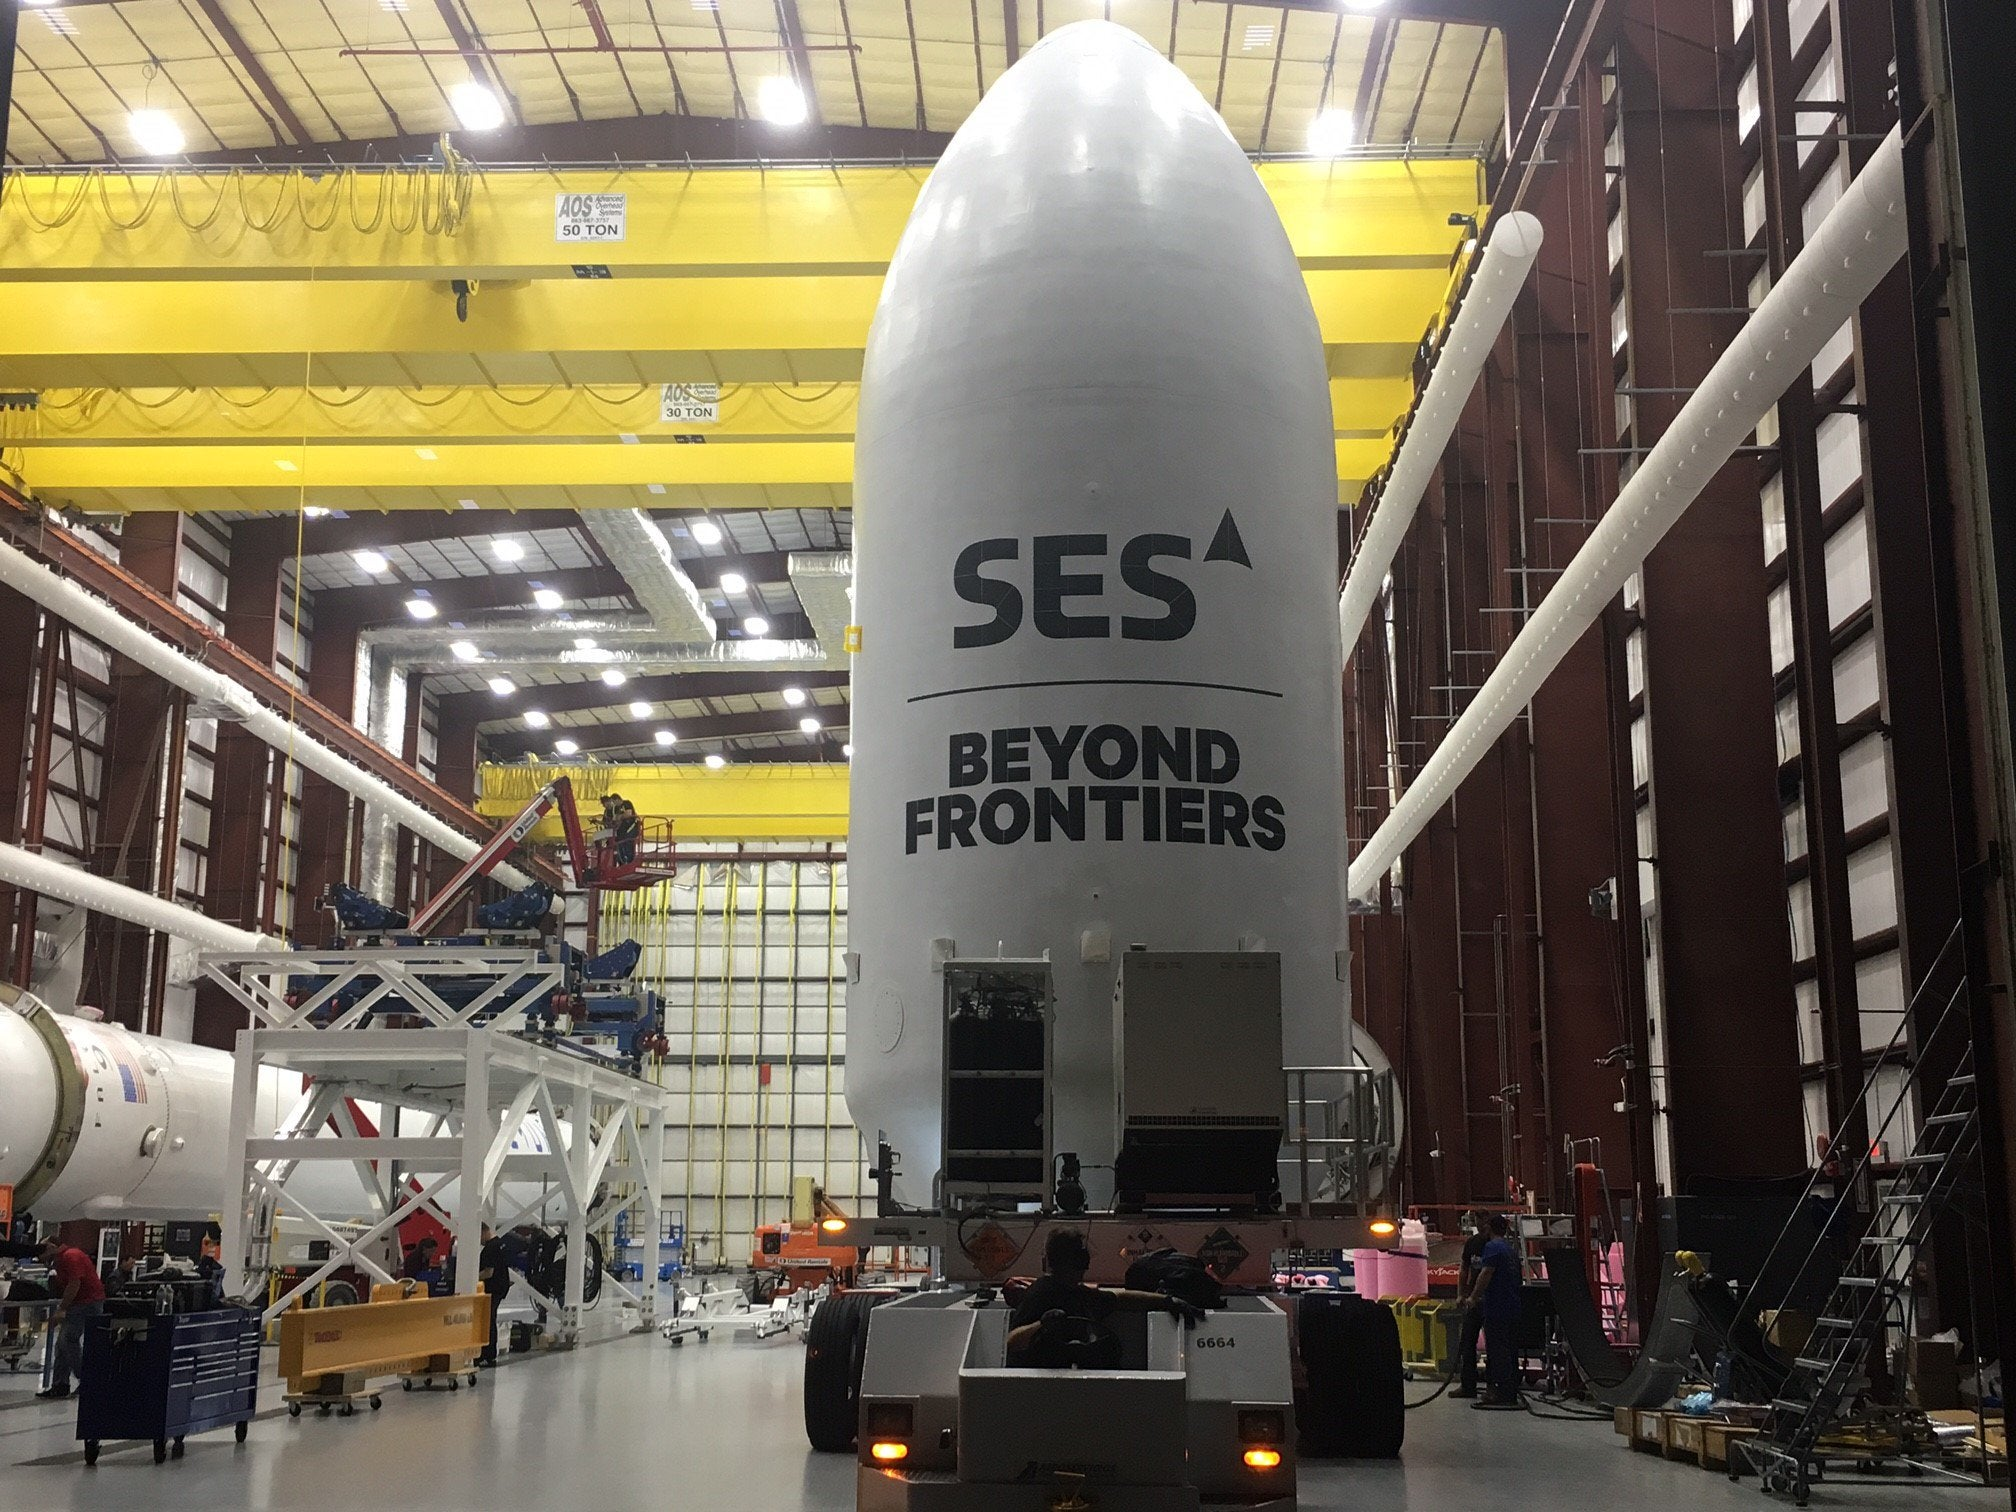 SpaceX landed an entirely new piece of the Falcon 9 rocket tonight